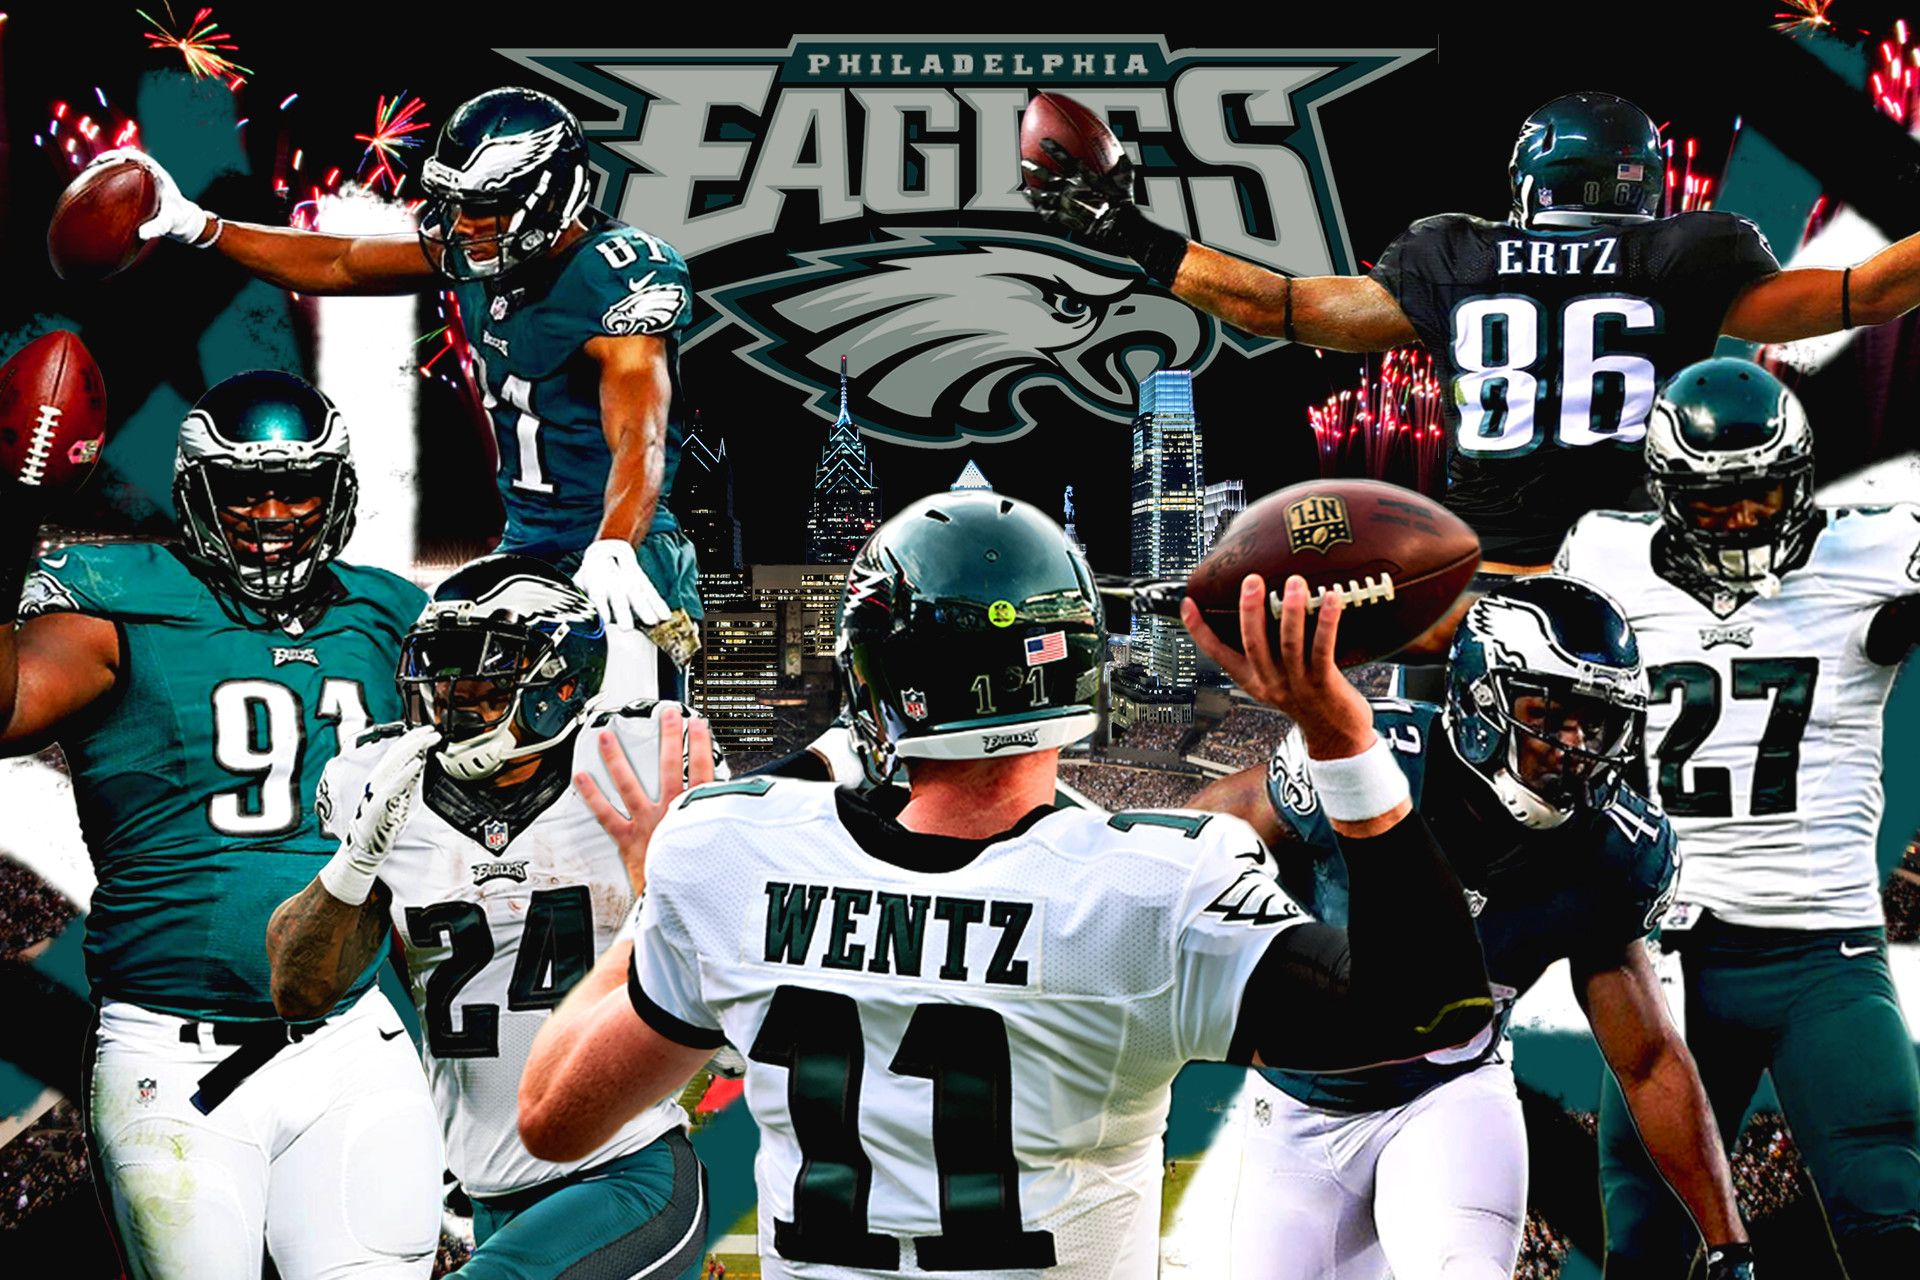 Eagles Football Wallpapers Top Free Eagles Football Backgrounds